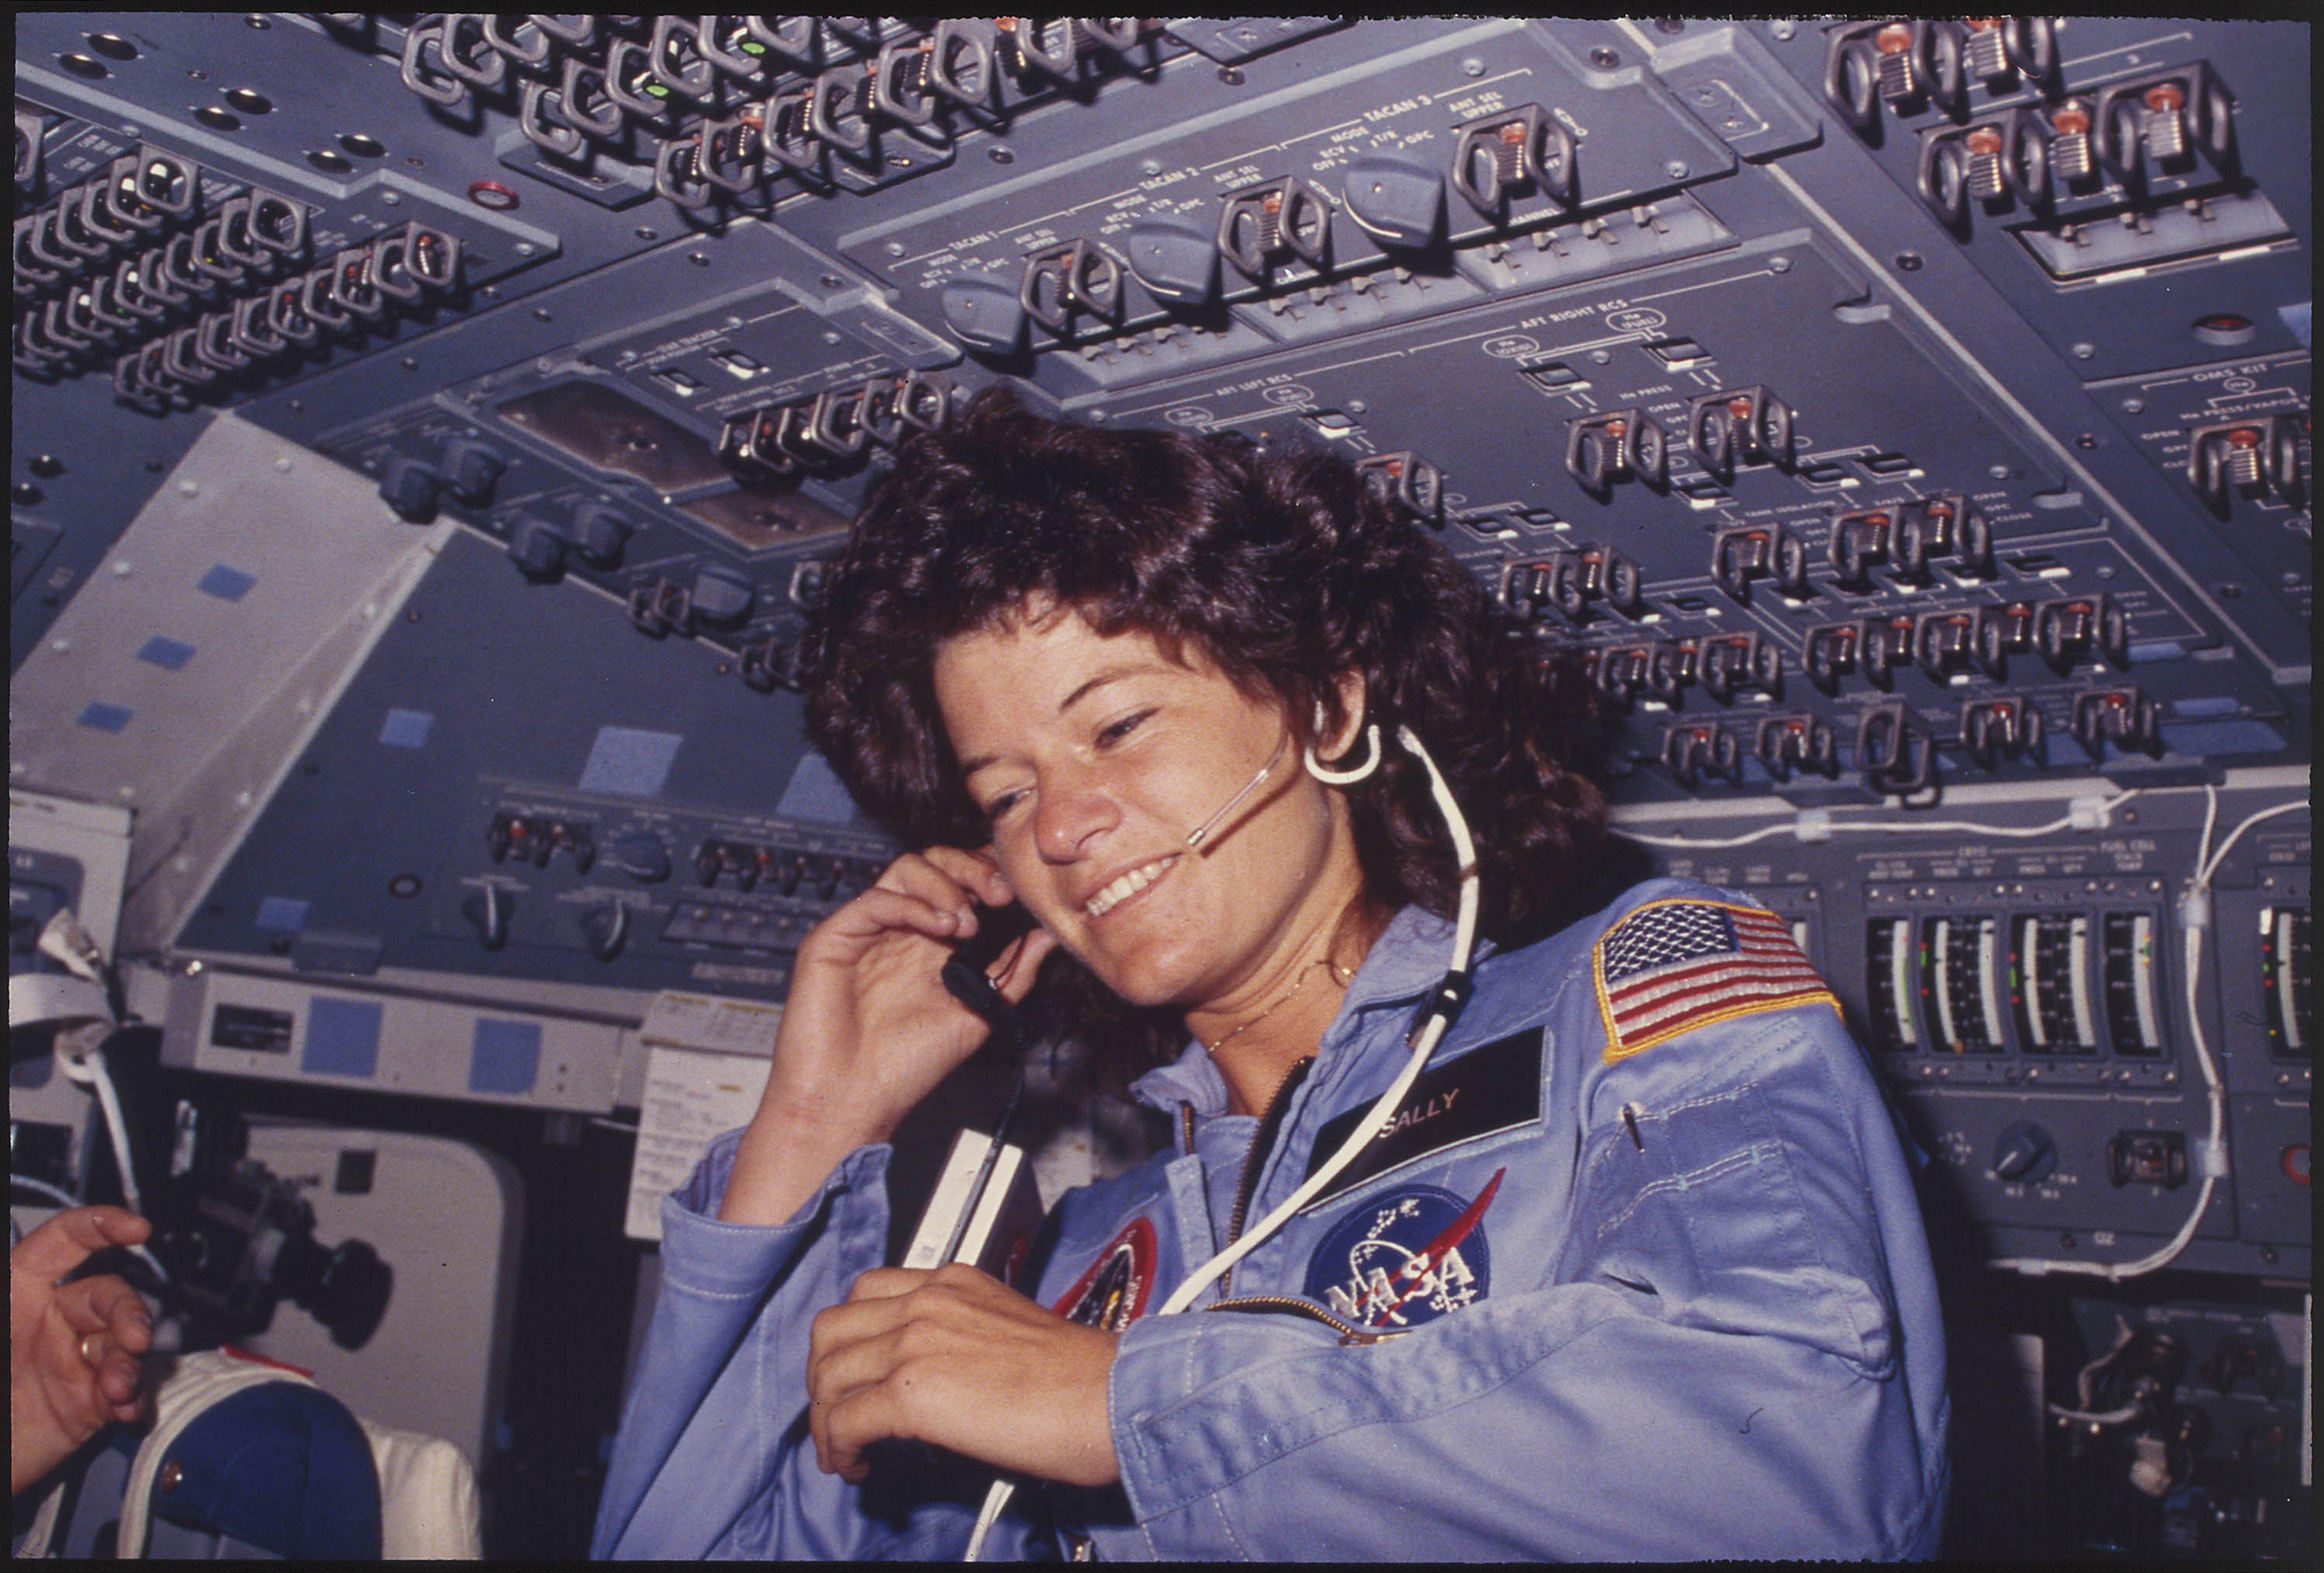 <p>On May 26, 1951, a girl born in Encino, California would grow up to become the first American woman in space. Though Sally Ride later inspired a whole generation of women to follow in her footsteps, she actually came from a long history of female astronomers and explorers.<br></p><p>From the women who looked skyward centuries ago, to those who continue the legacy, here are 18 pioneers who left their mark on the world and in the stars.<br></p>